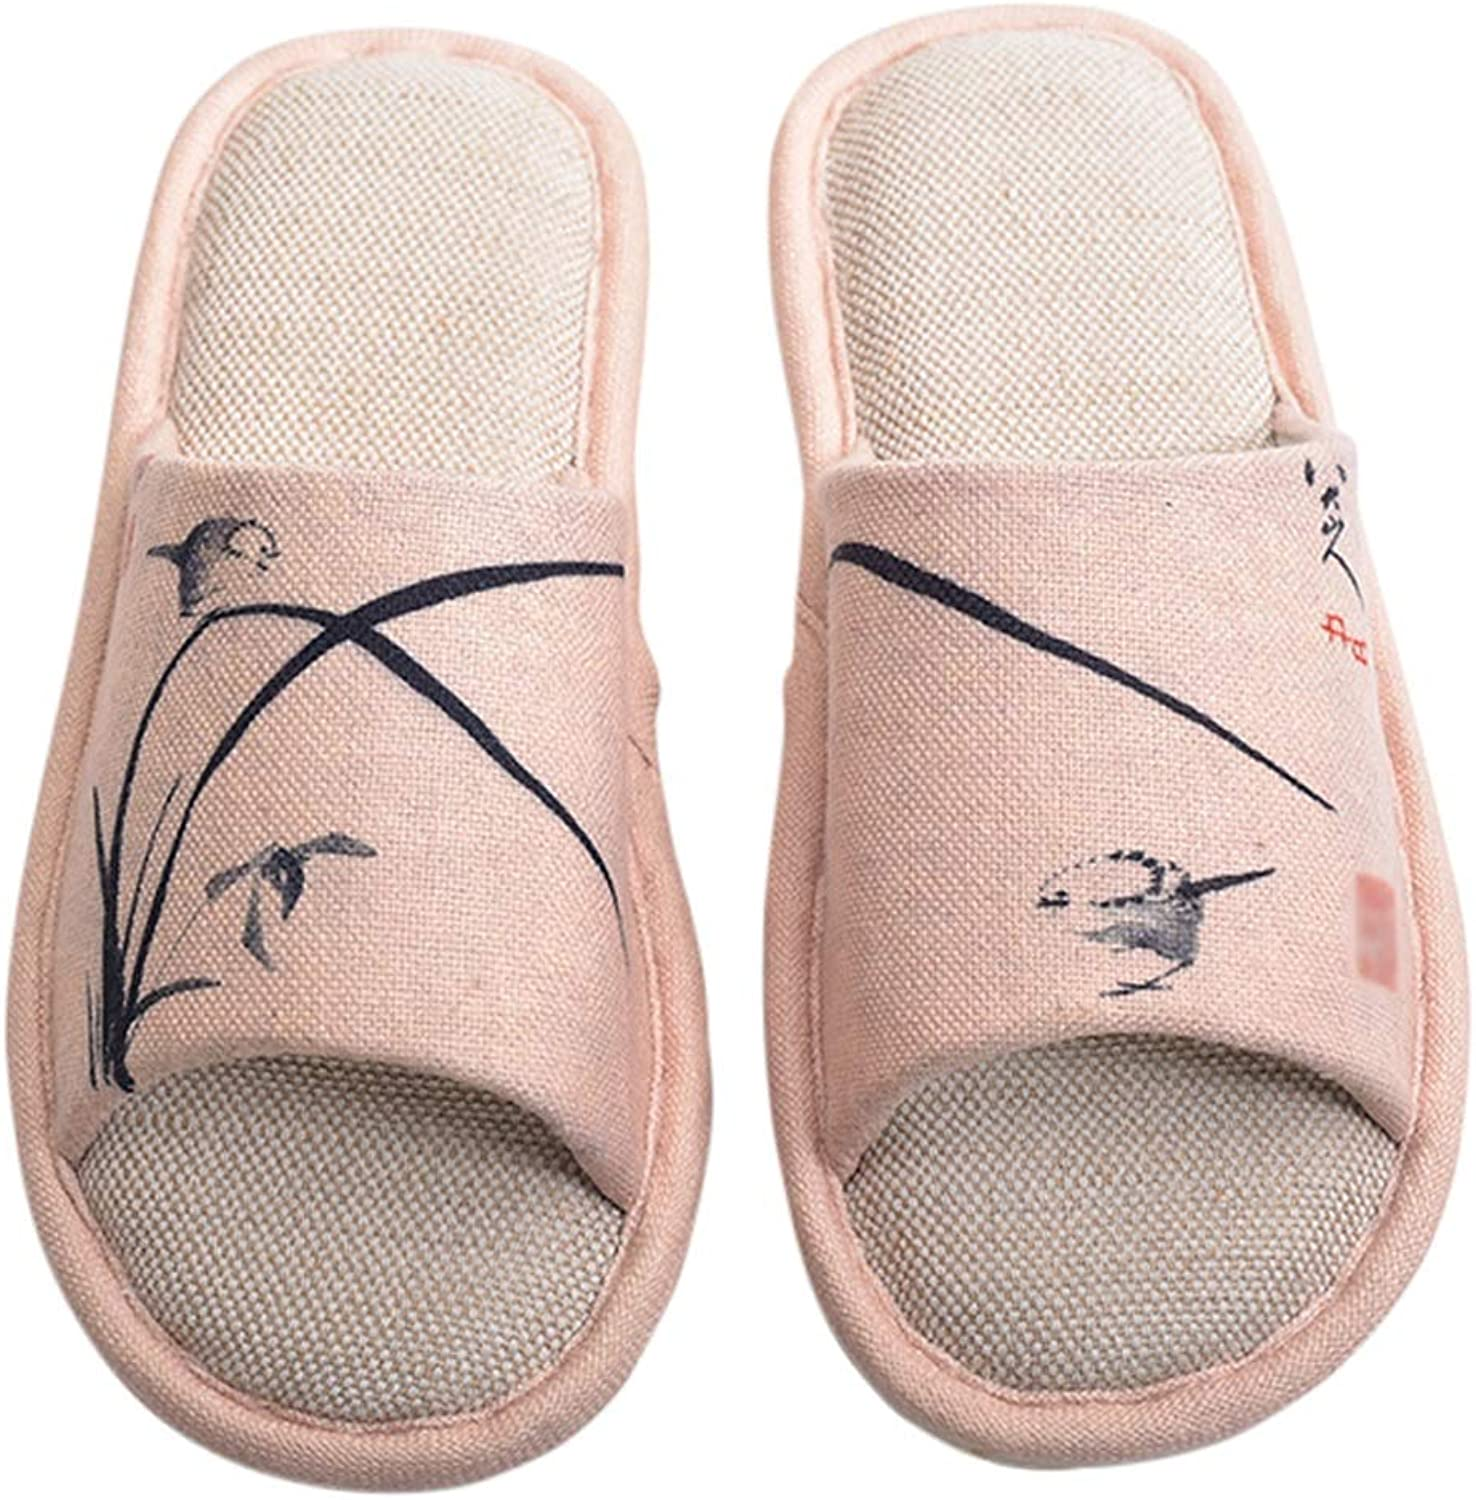 HUYP Pink Cotton and Linen Creative Slippers Home Non-Slip Female Summer Indoor Fashion Slippers (Size   5.5 US)